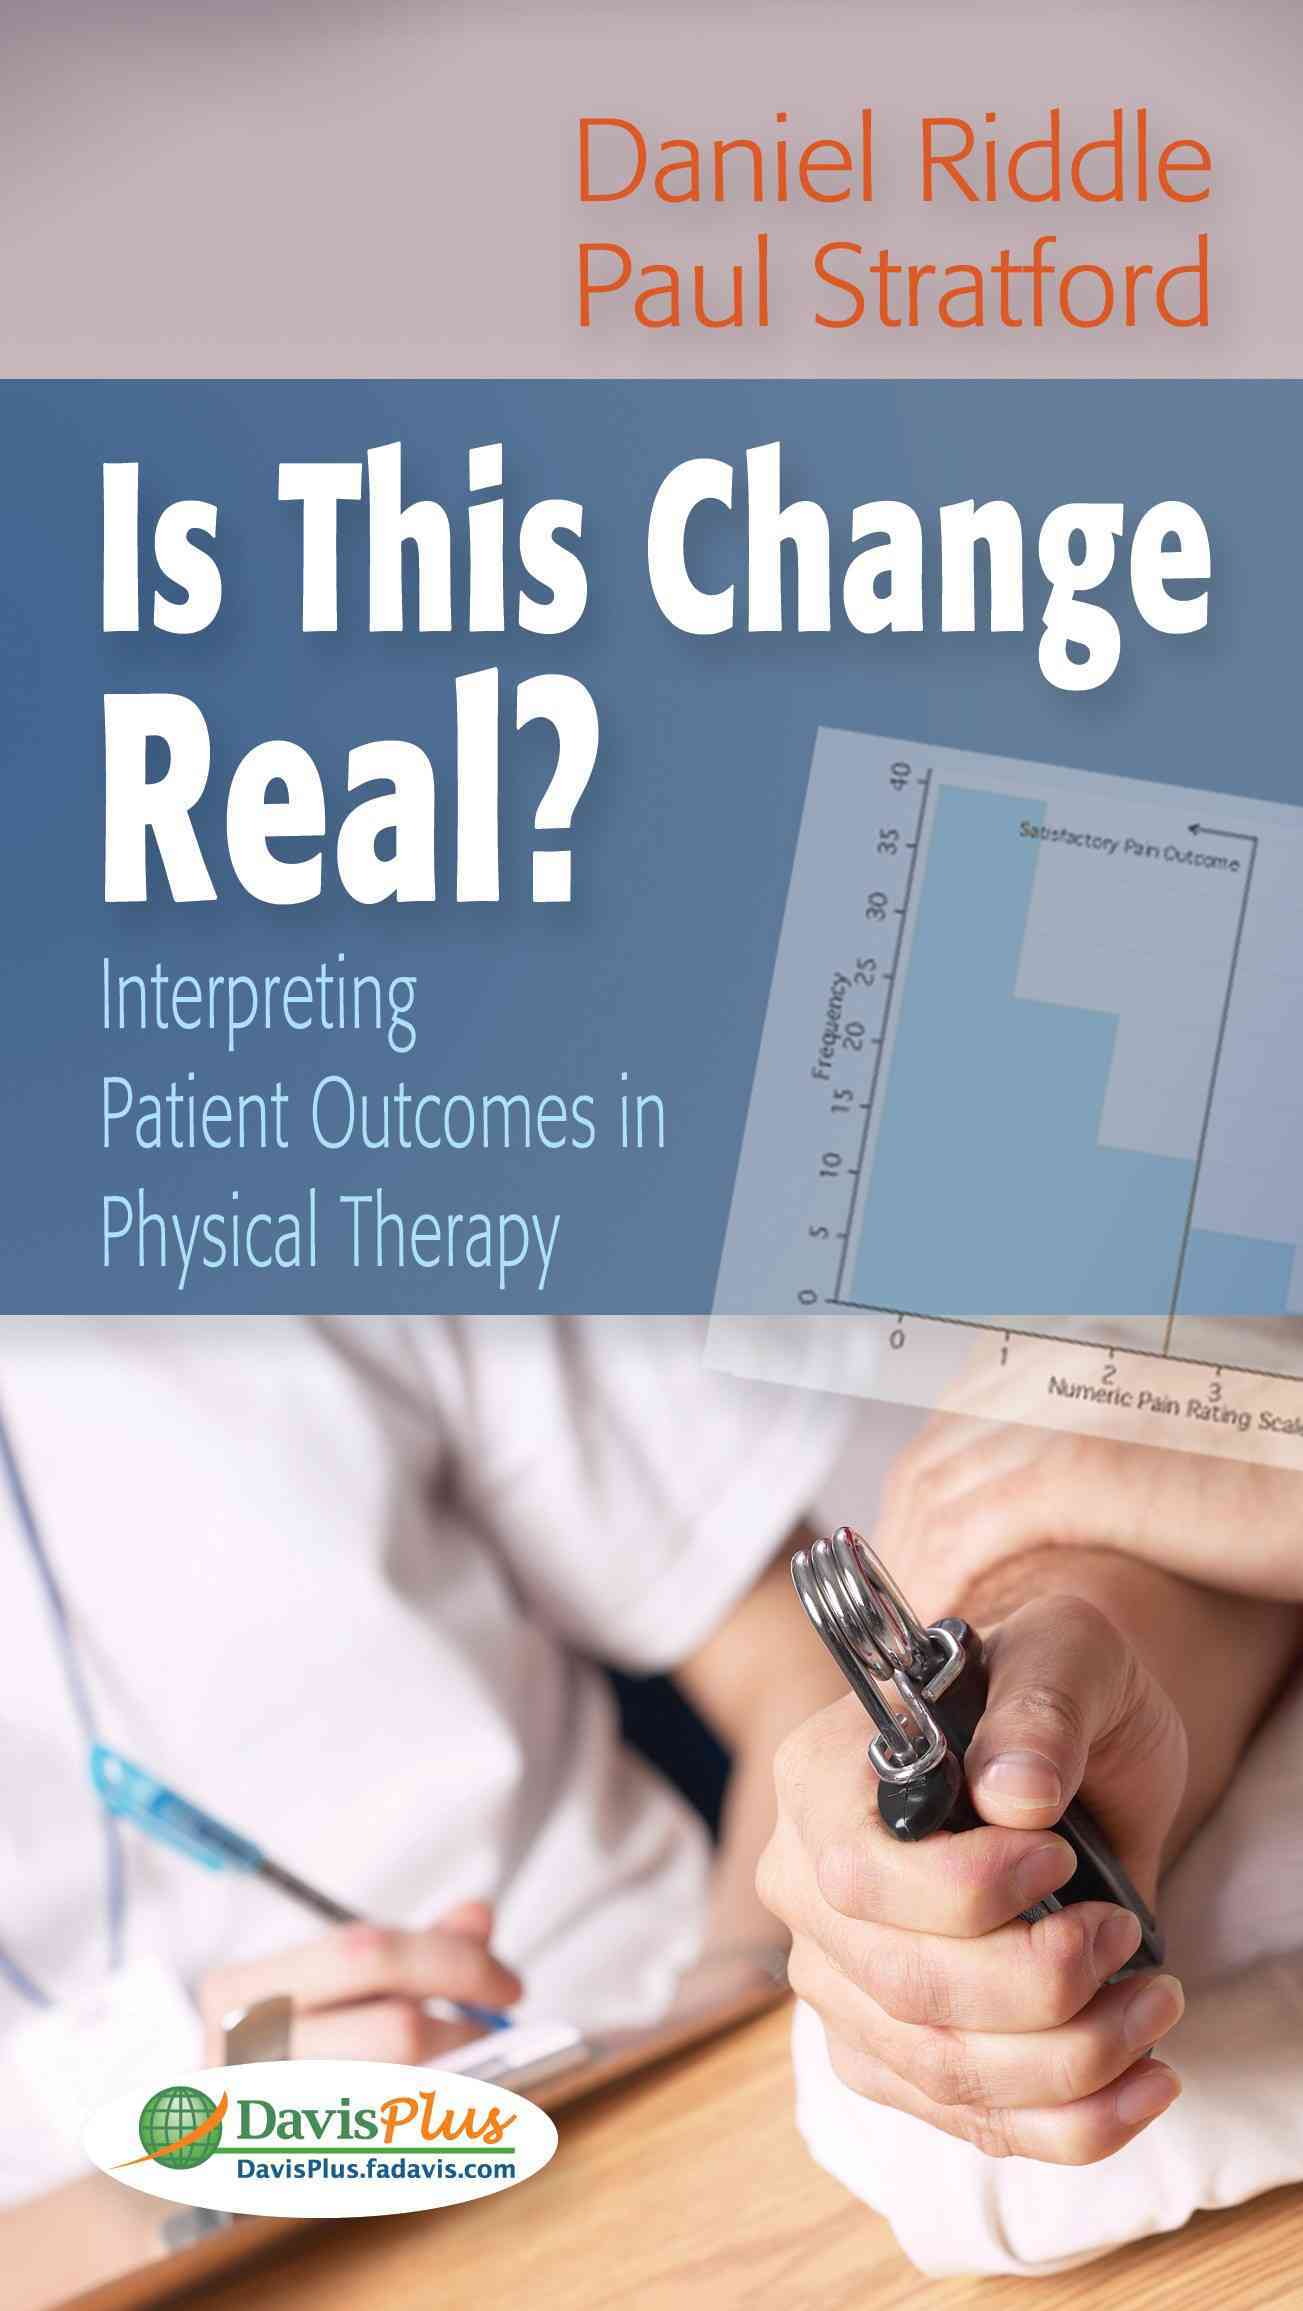 Is This Change Real? By Riddle, Daniel/ Stratford, Paul W.